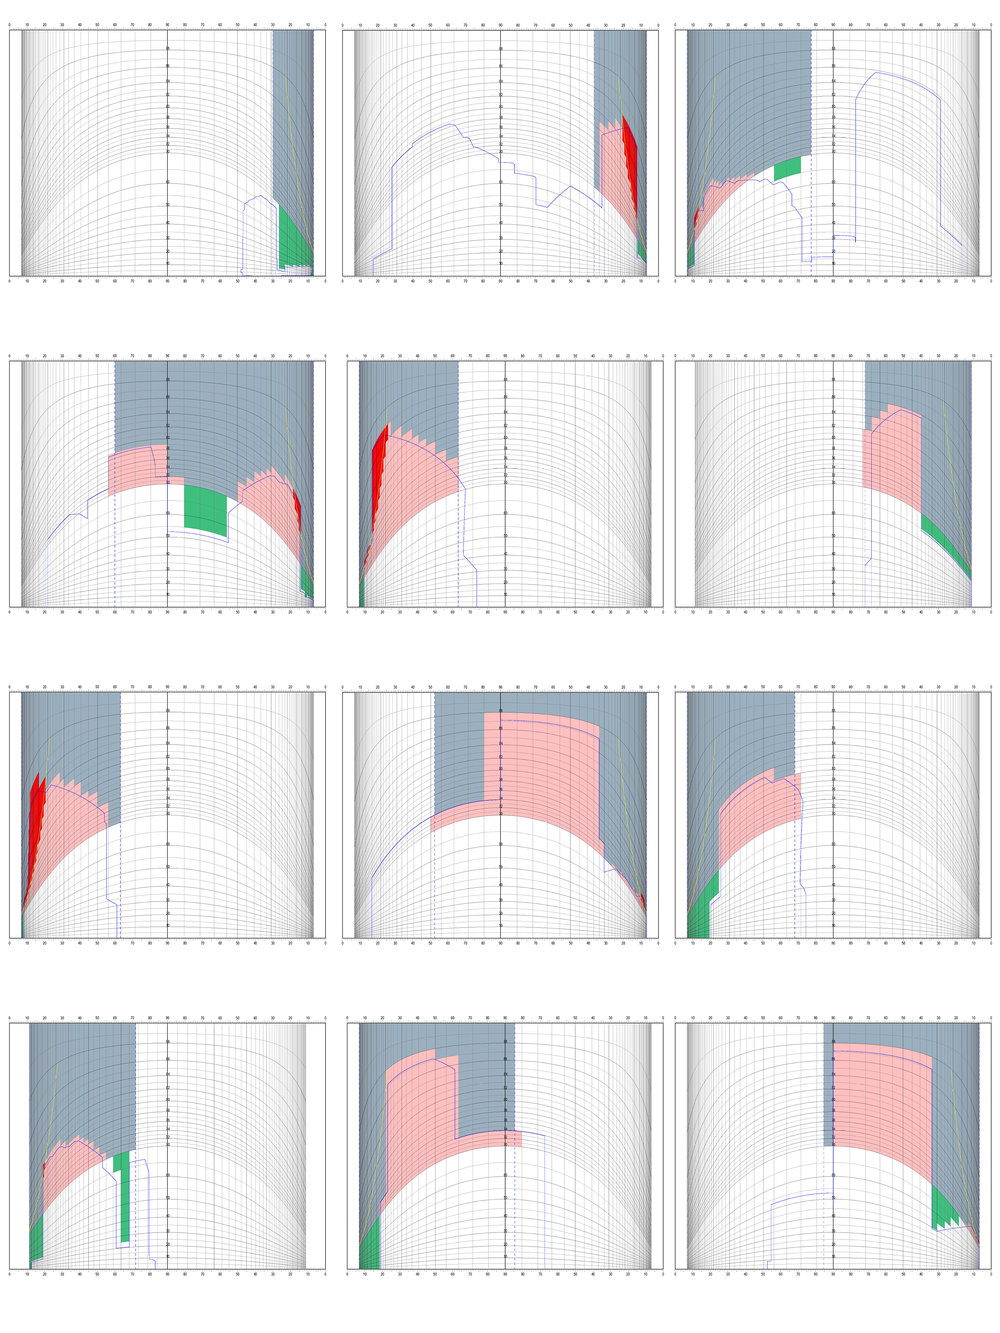 One-to-One_WALDRAM - DIAGRAMS - 12 chart variations.jpg